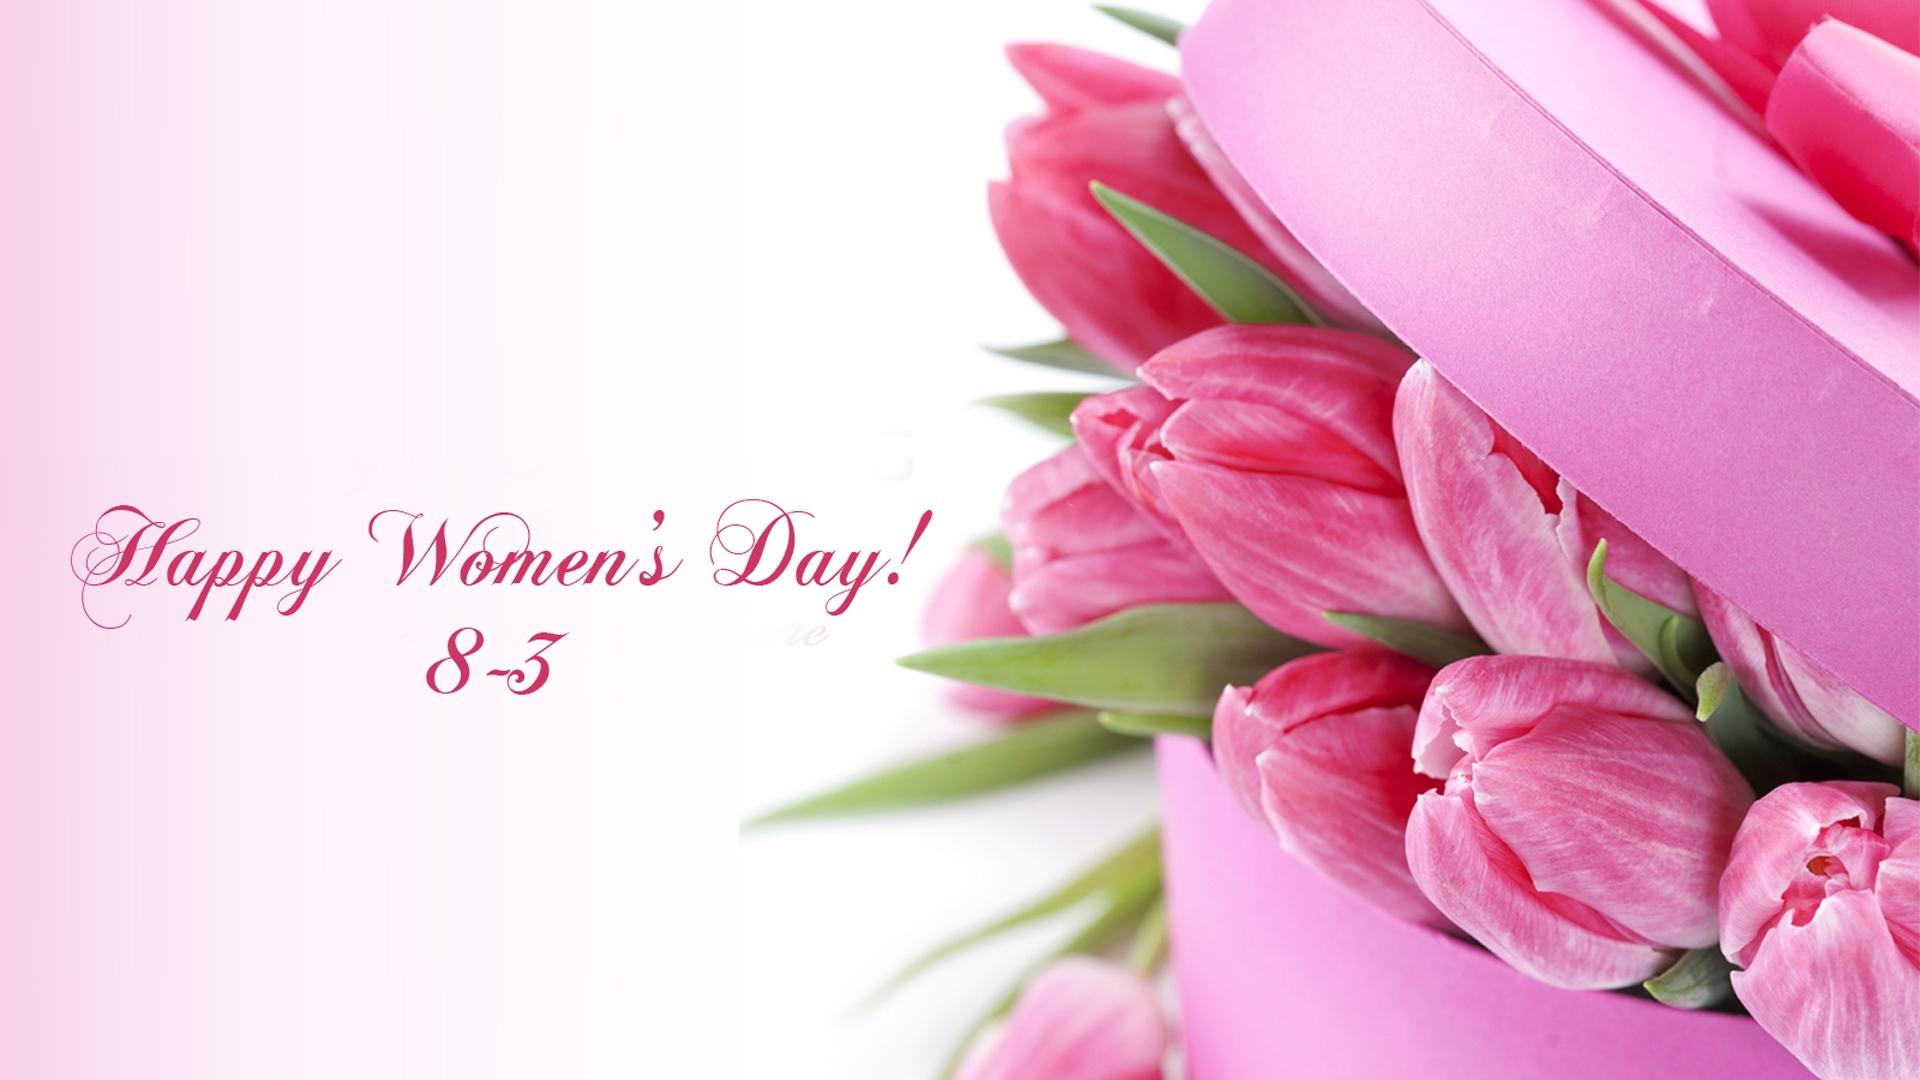 Wallpaper download dp - Download Womens Day Images For Whatsapp Dp Profile